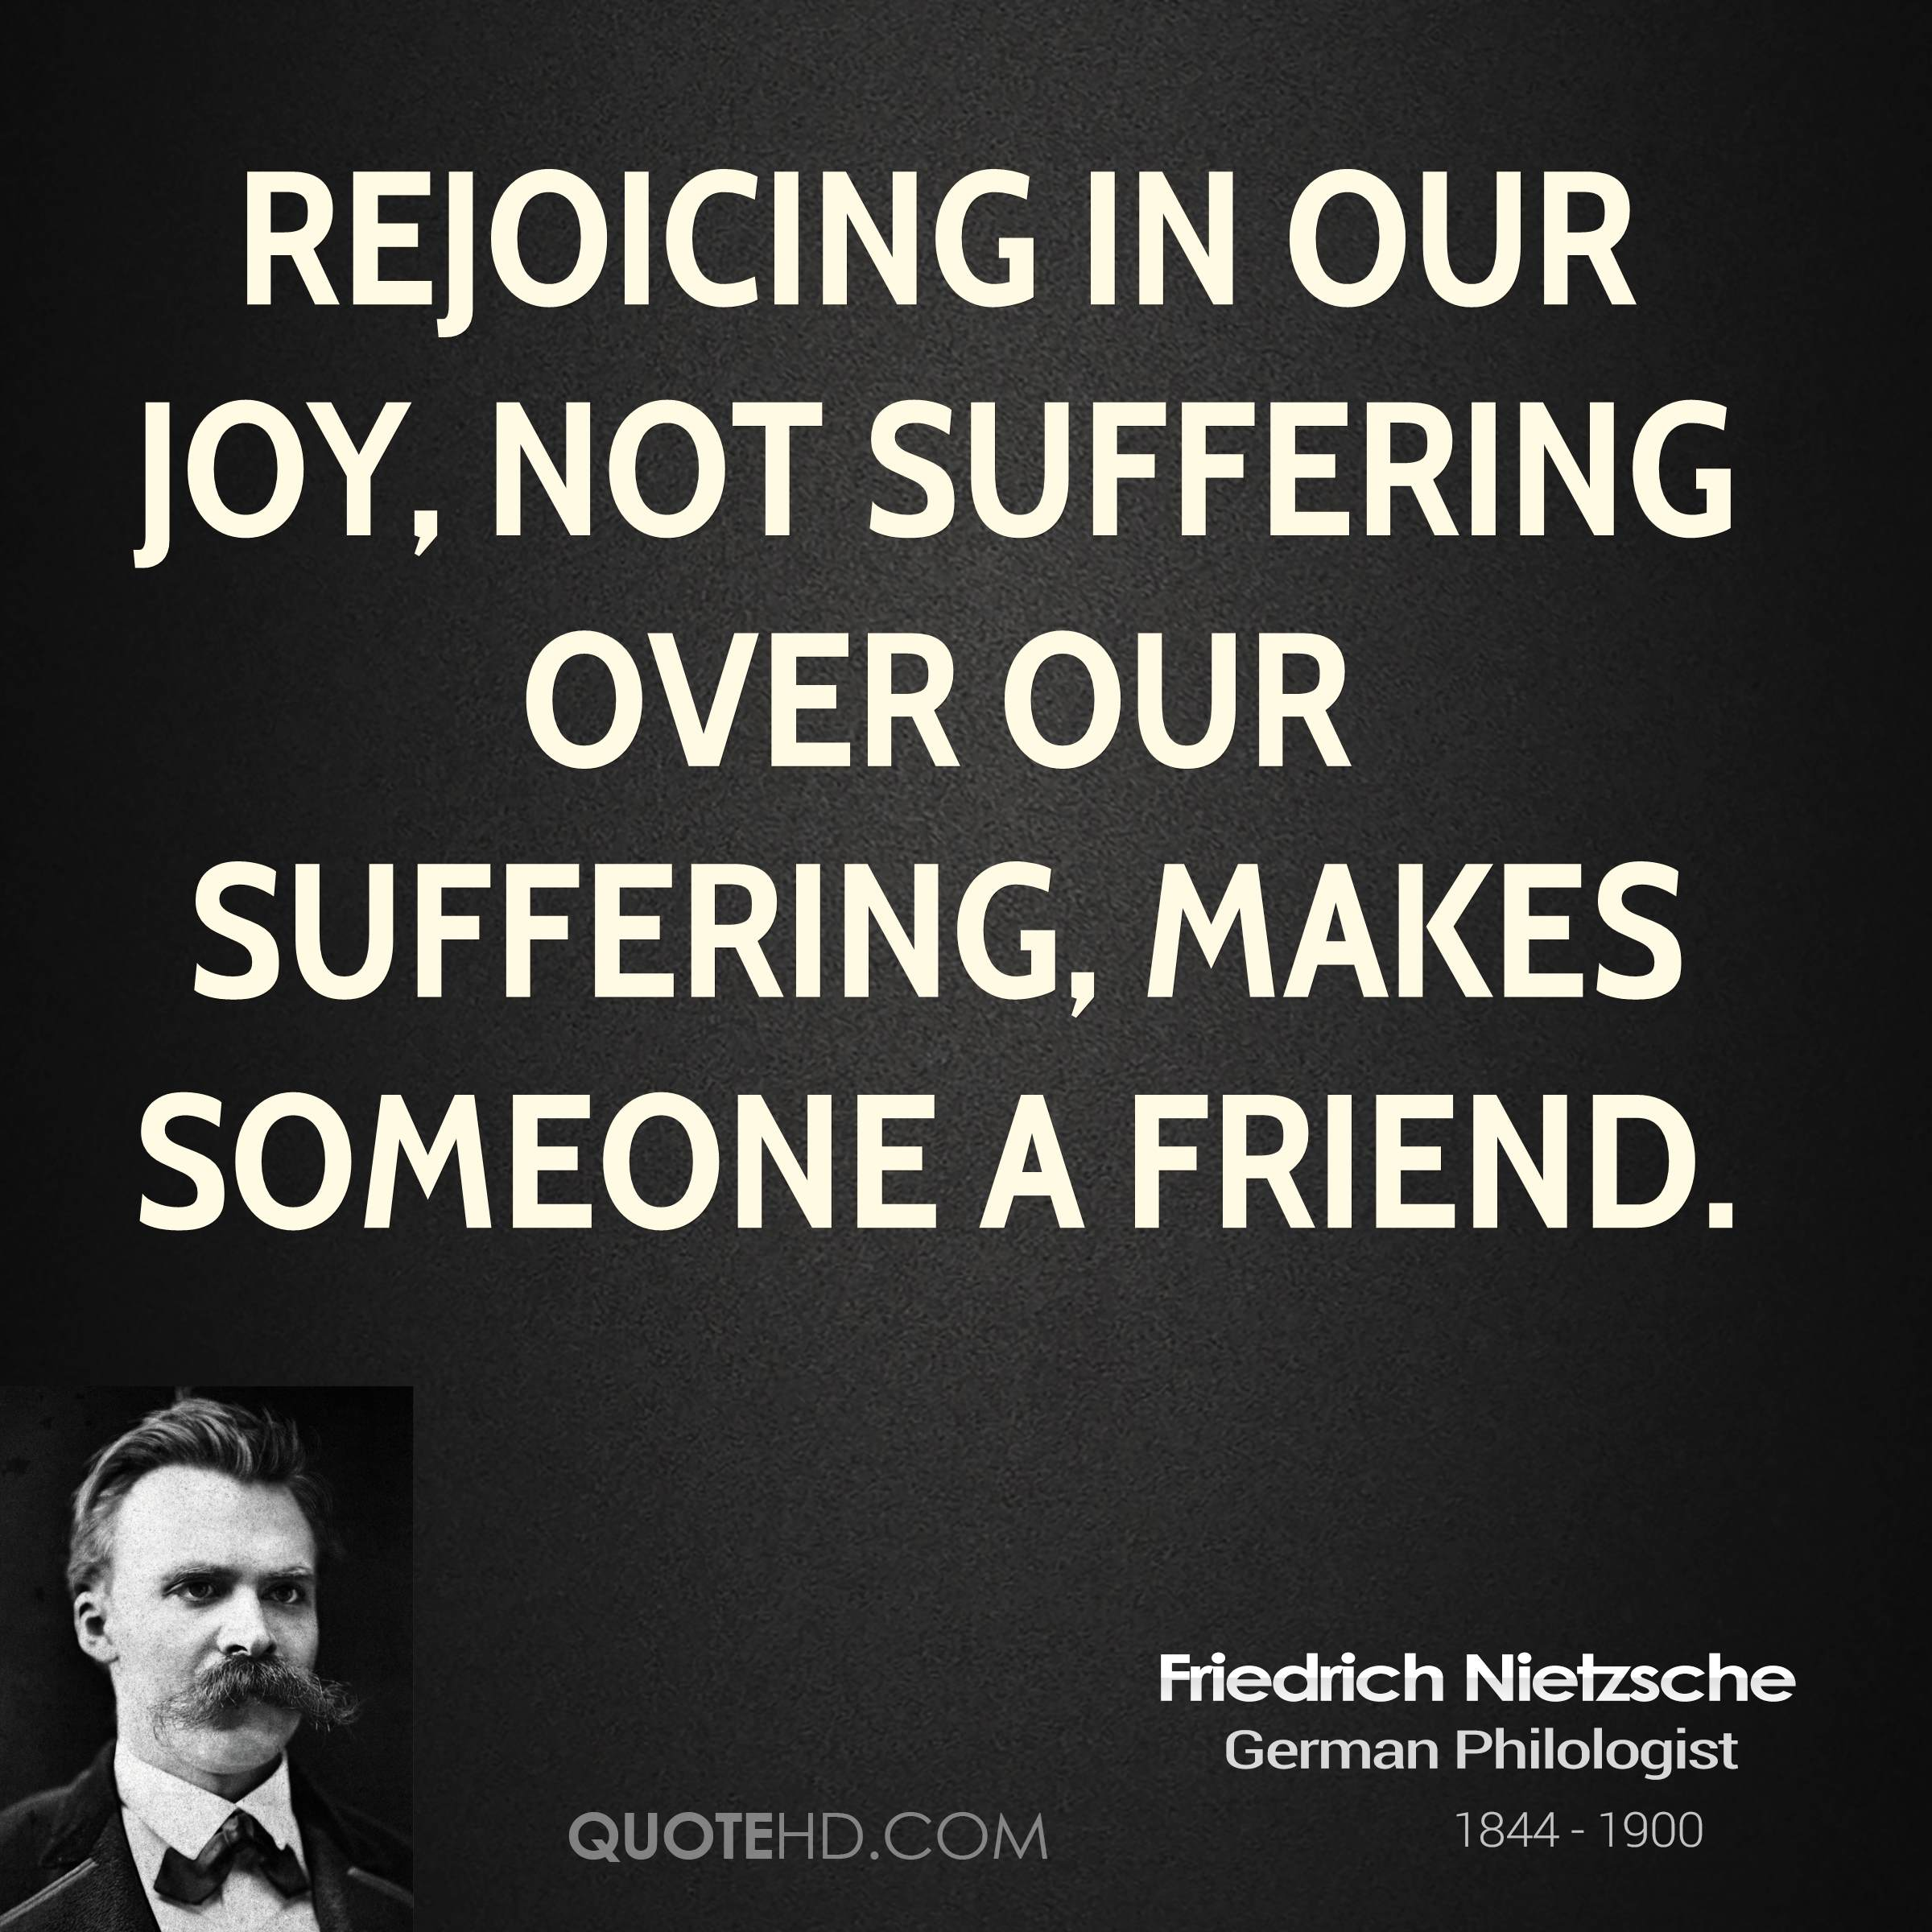 Quotes Friendship Nietzsche : Friedrich nietzsche quotes on friendship quotesgram